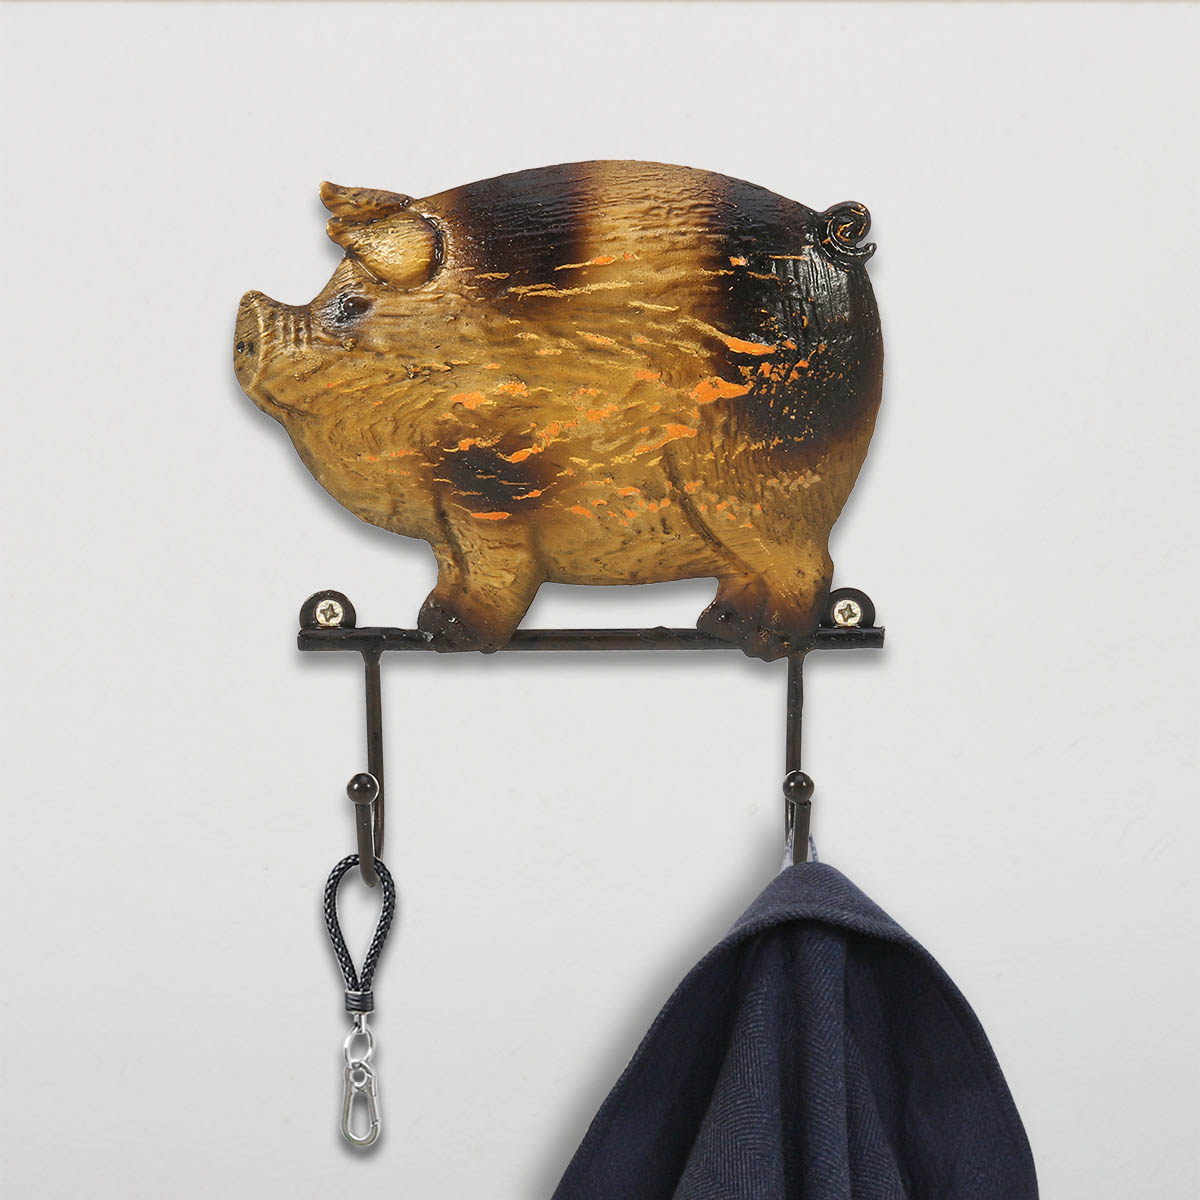 Practical Wall Hook Rustic Cast Iron Coat Hat Wall Hooks Vintage Design With 2 Hooks Decorative 2019 Pig Year Home Decor